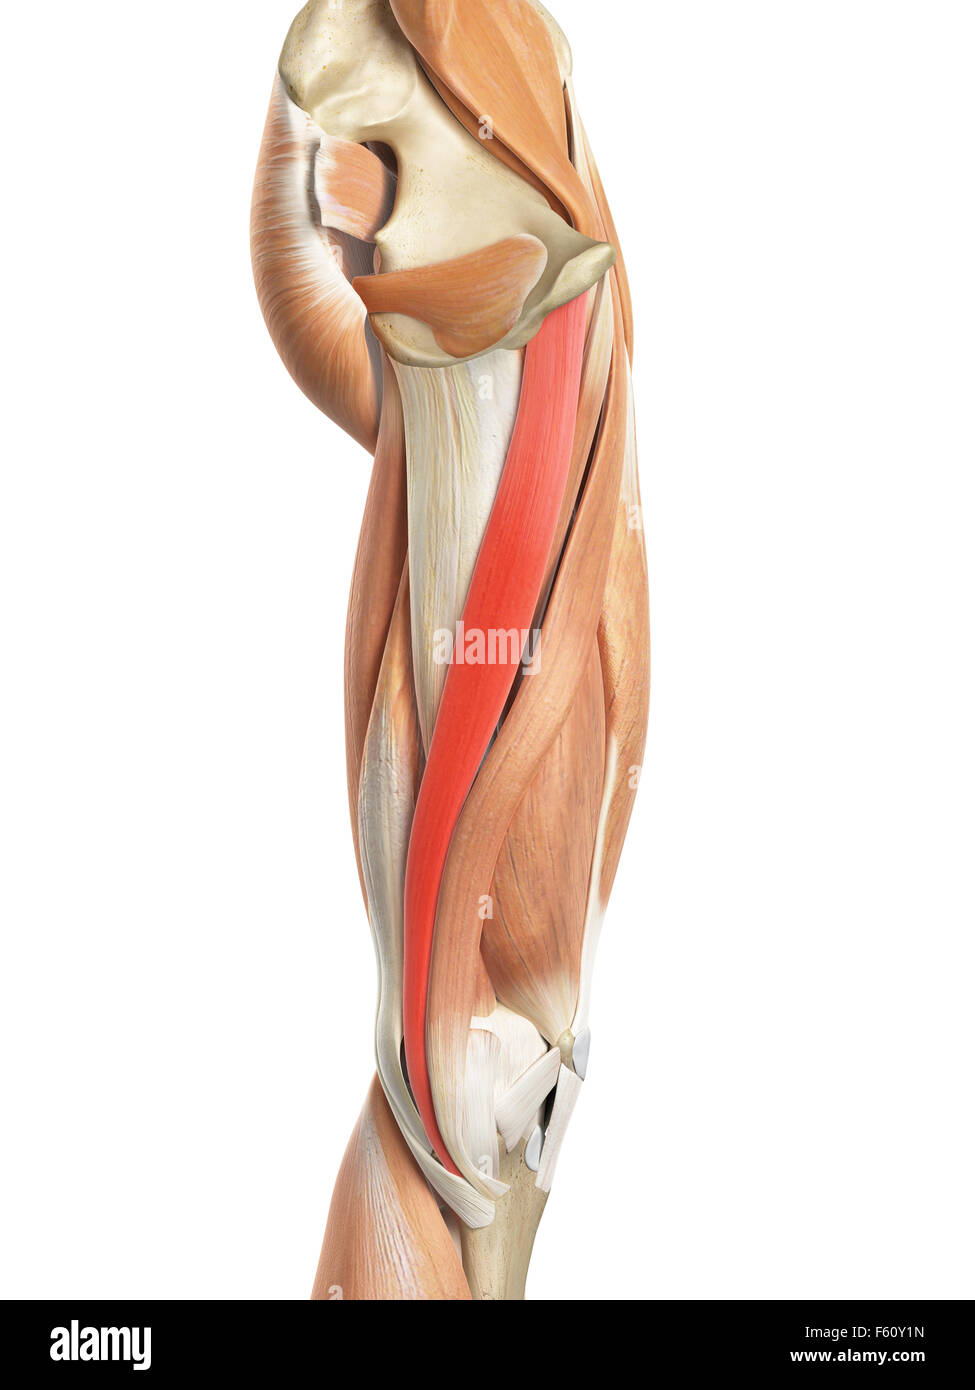 Gracilis Muscle Stock Photos Gracilis Muscle Stock Images Alamy